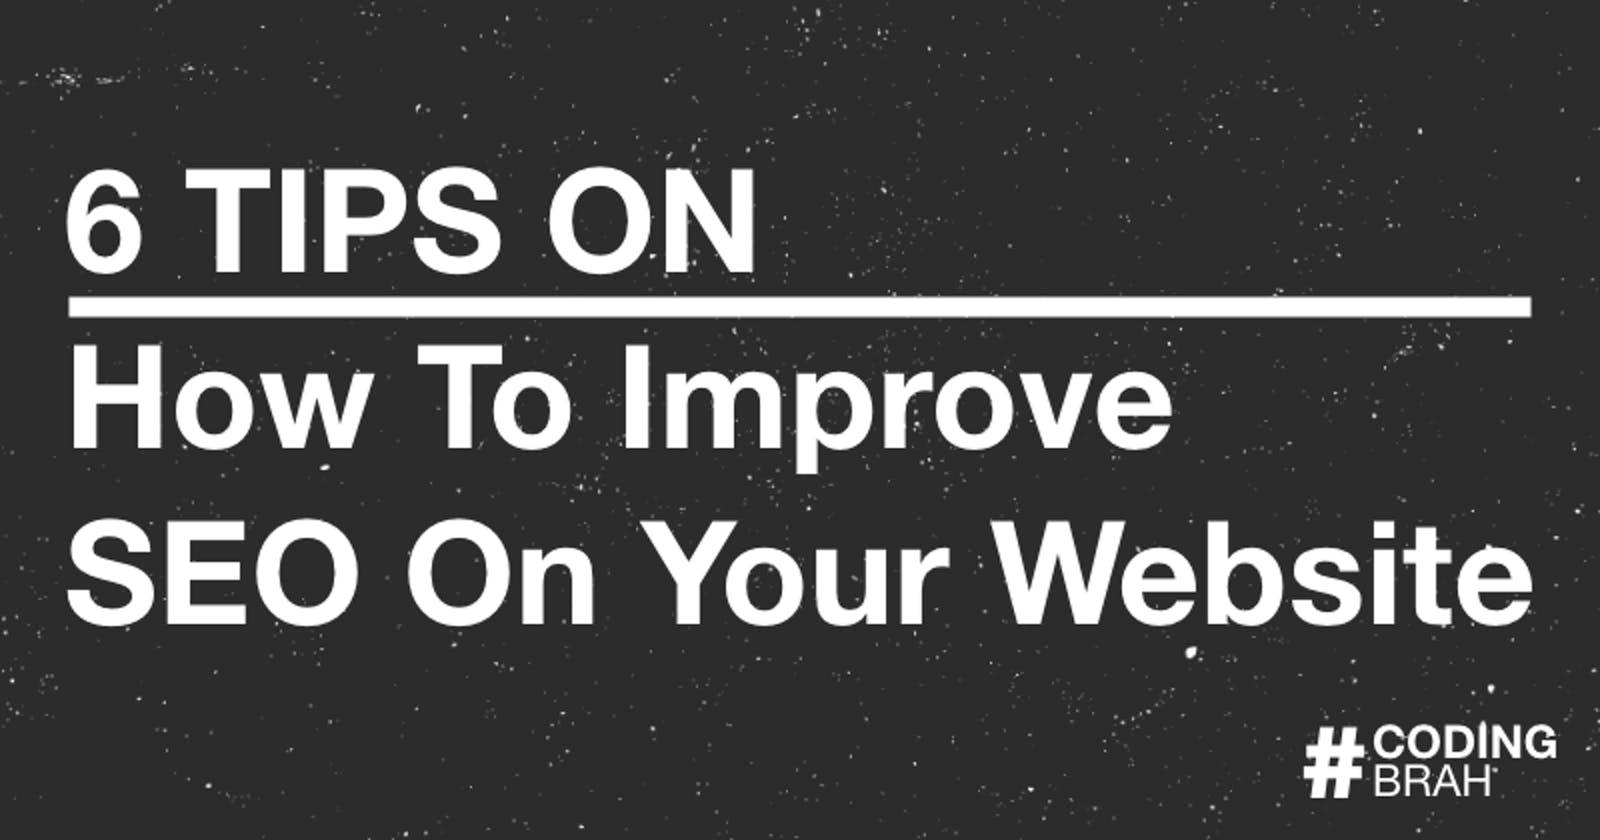 6 Tips On How To Improve SEO On Your Website